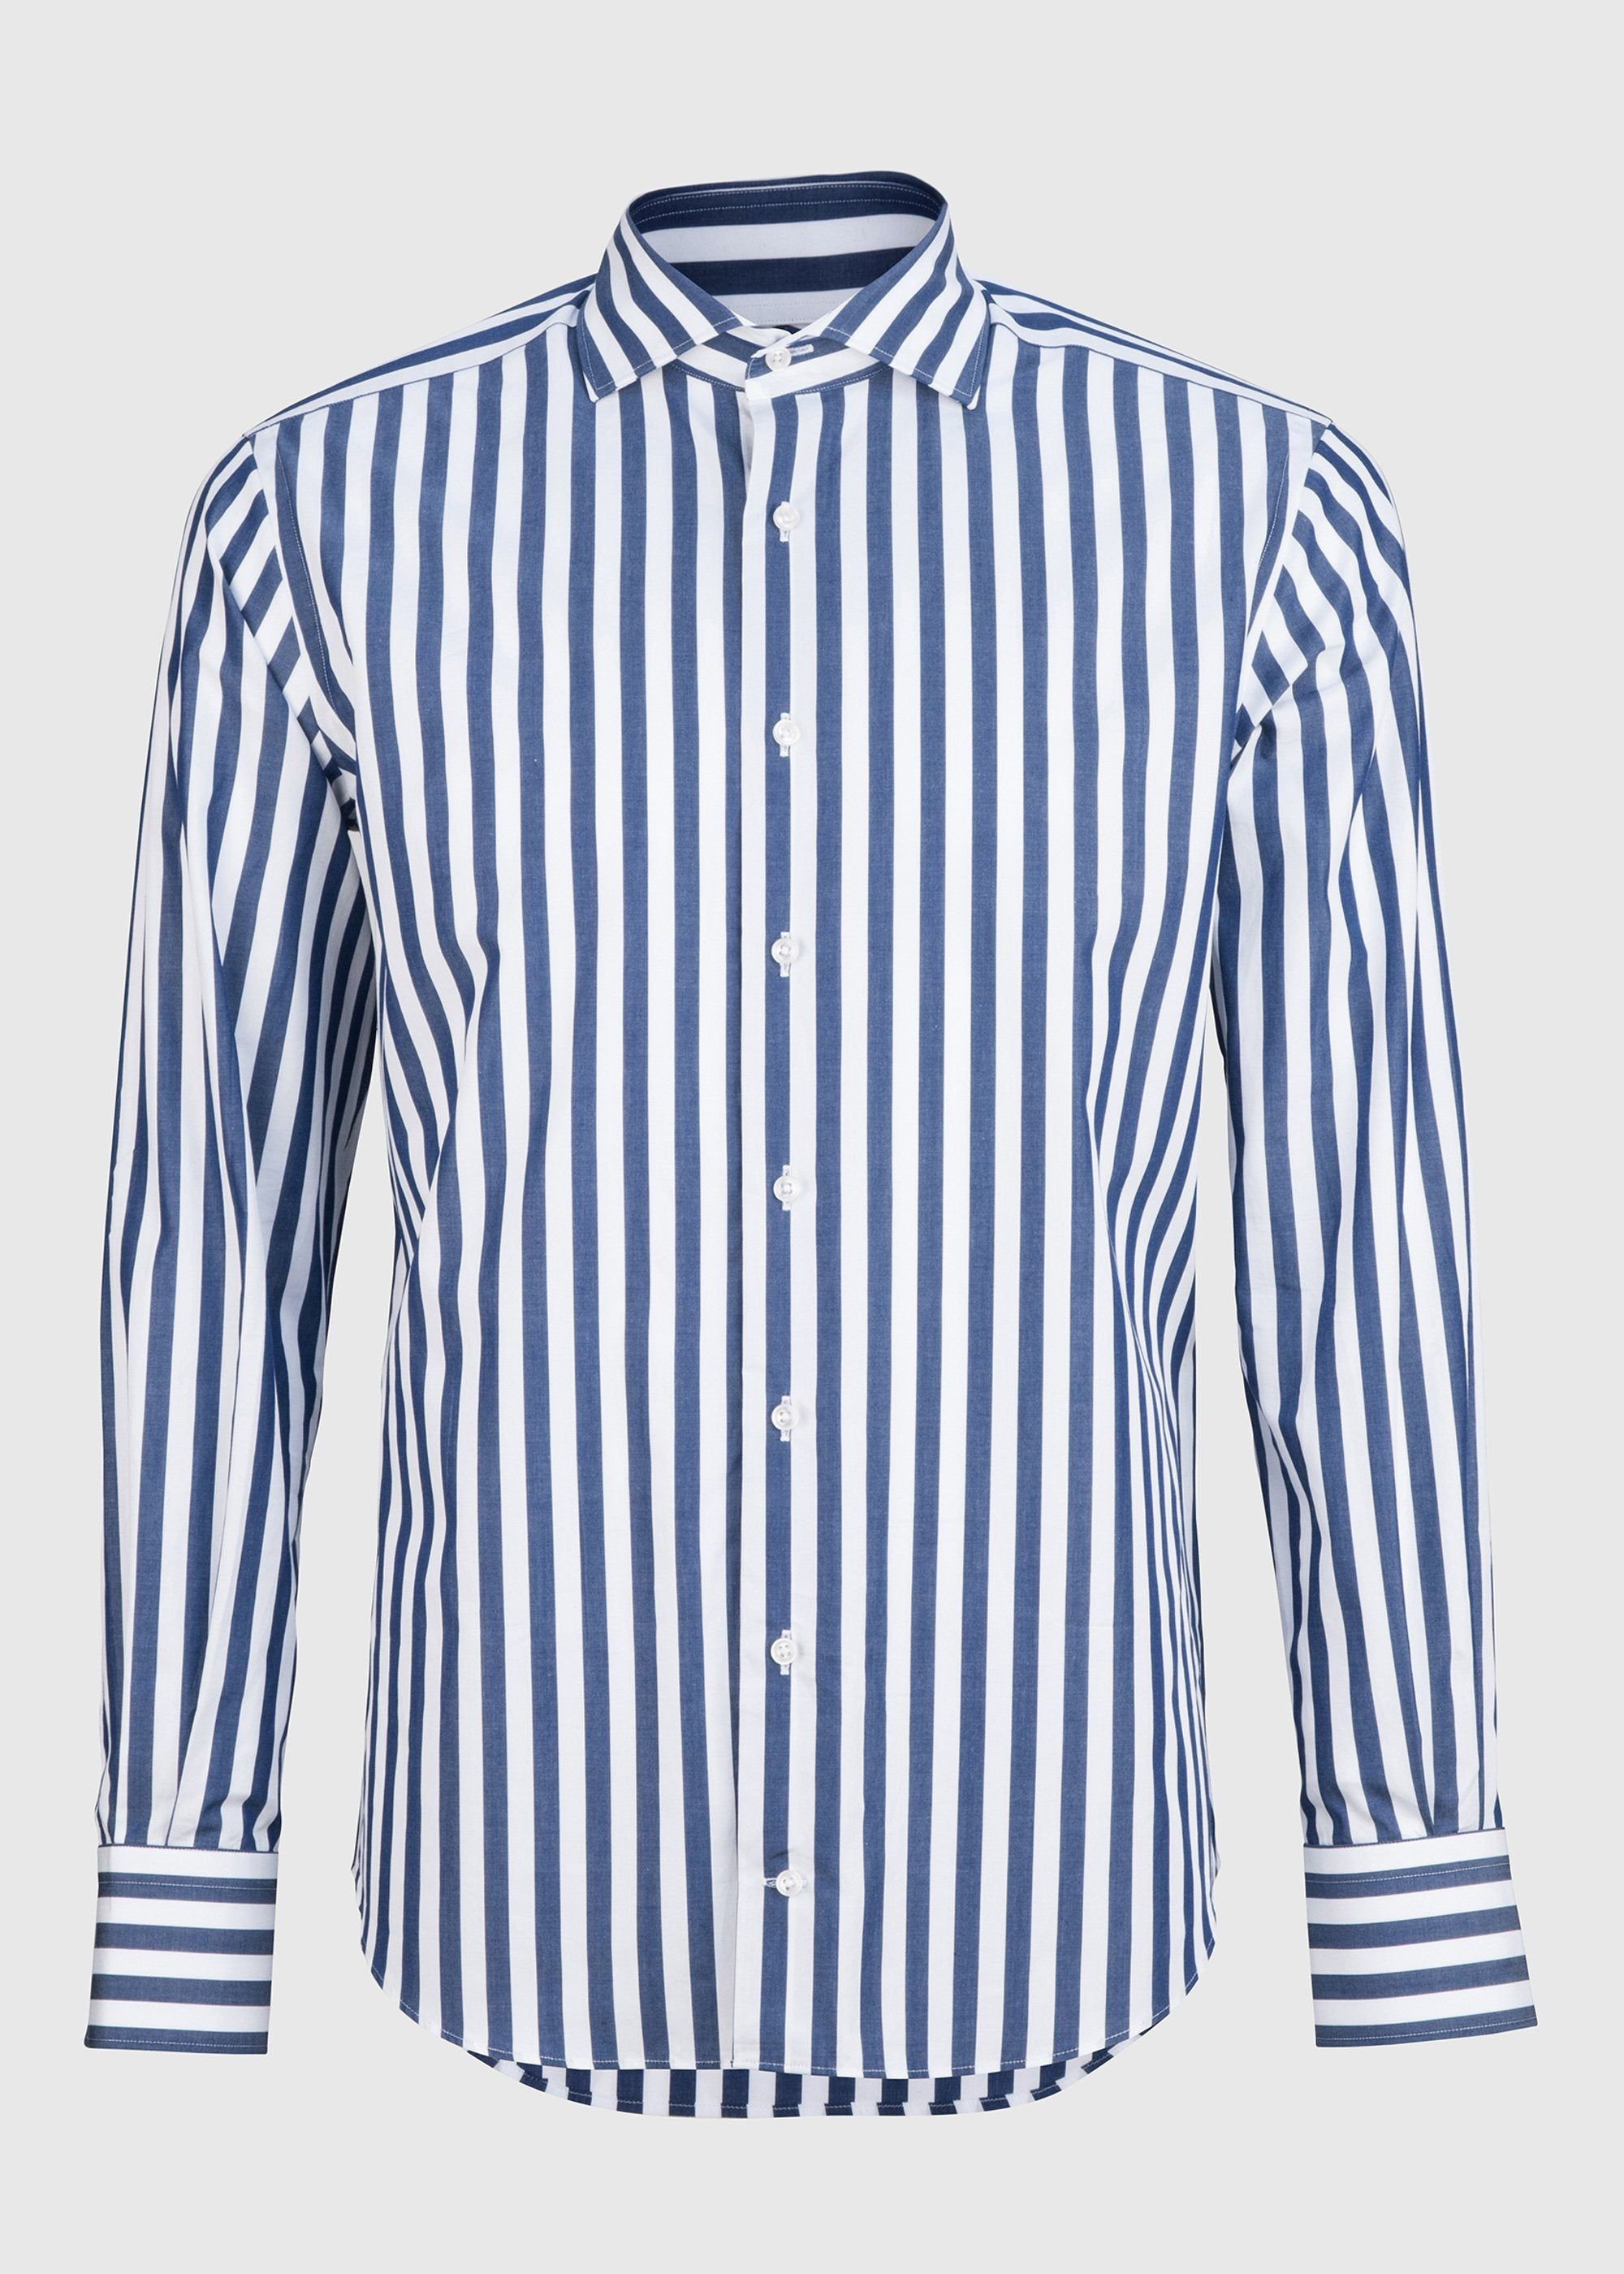 Pilot (BC) Shirt - Extra Large Navy Stripe